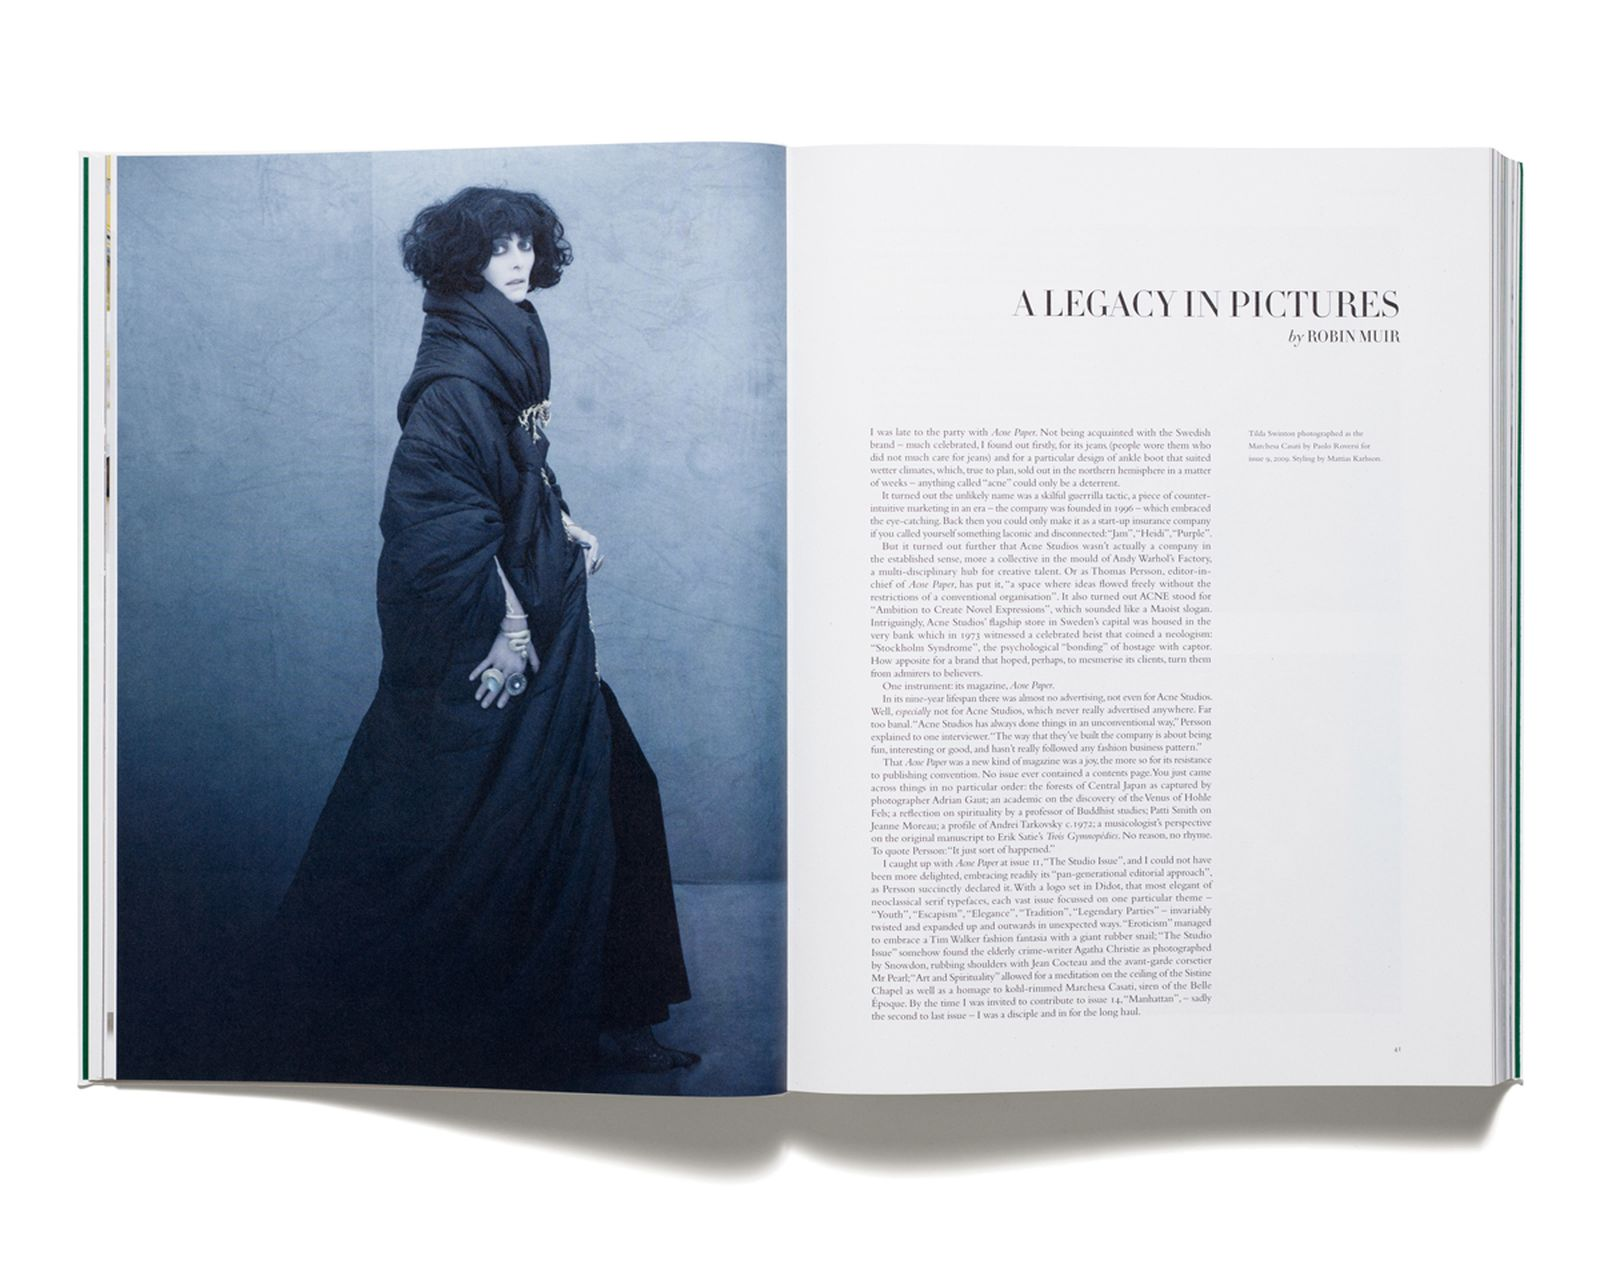 A LEGACY IN PHOTOGRAPHS - Essay by Robin Muir. Tilda Swinton photographed by Paolo Roversi for 'Acne Paper' issue 9, 2009. Styling by Mattias Karlsson.